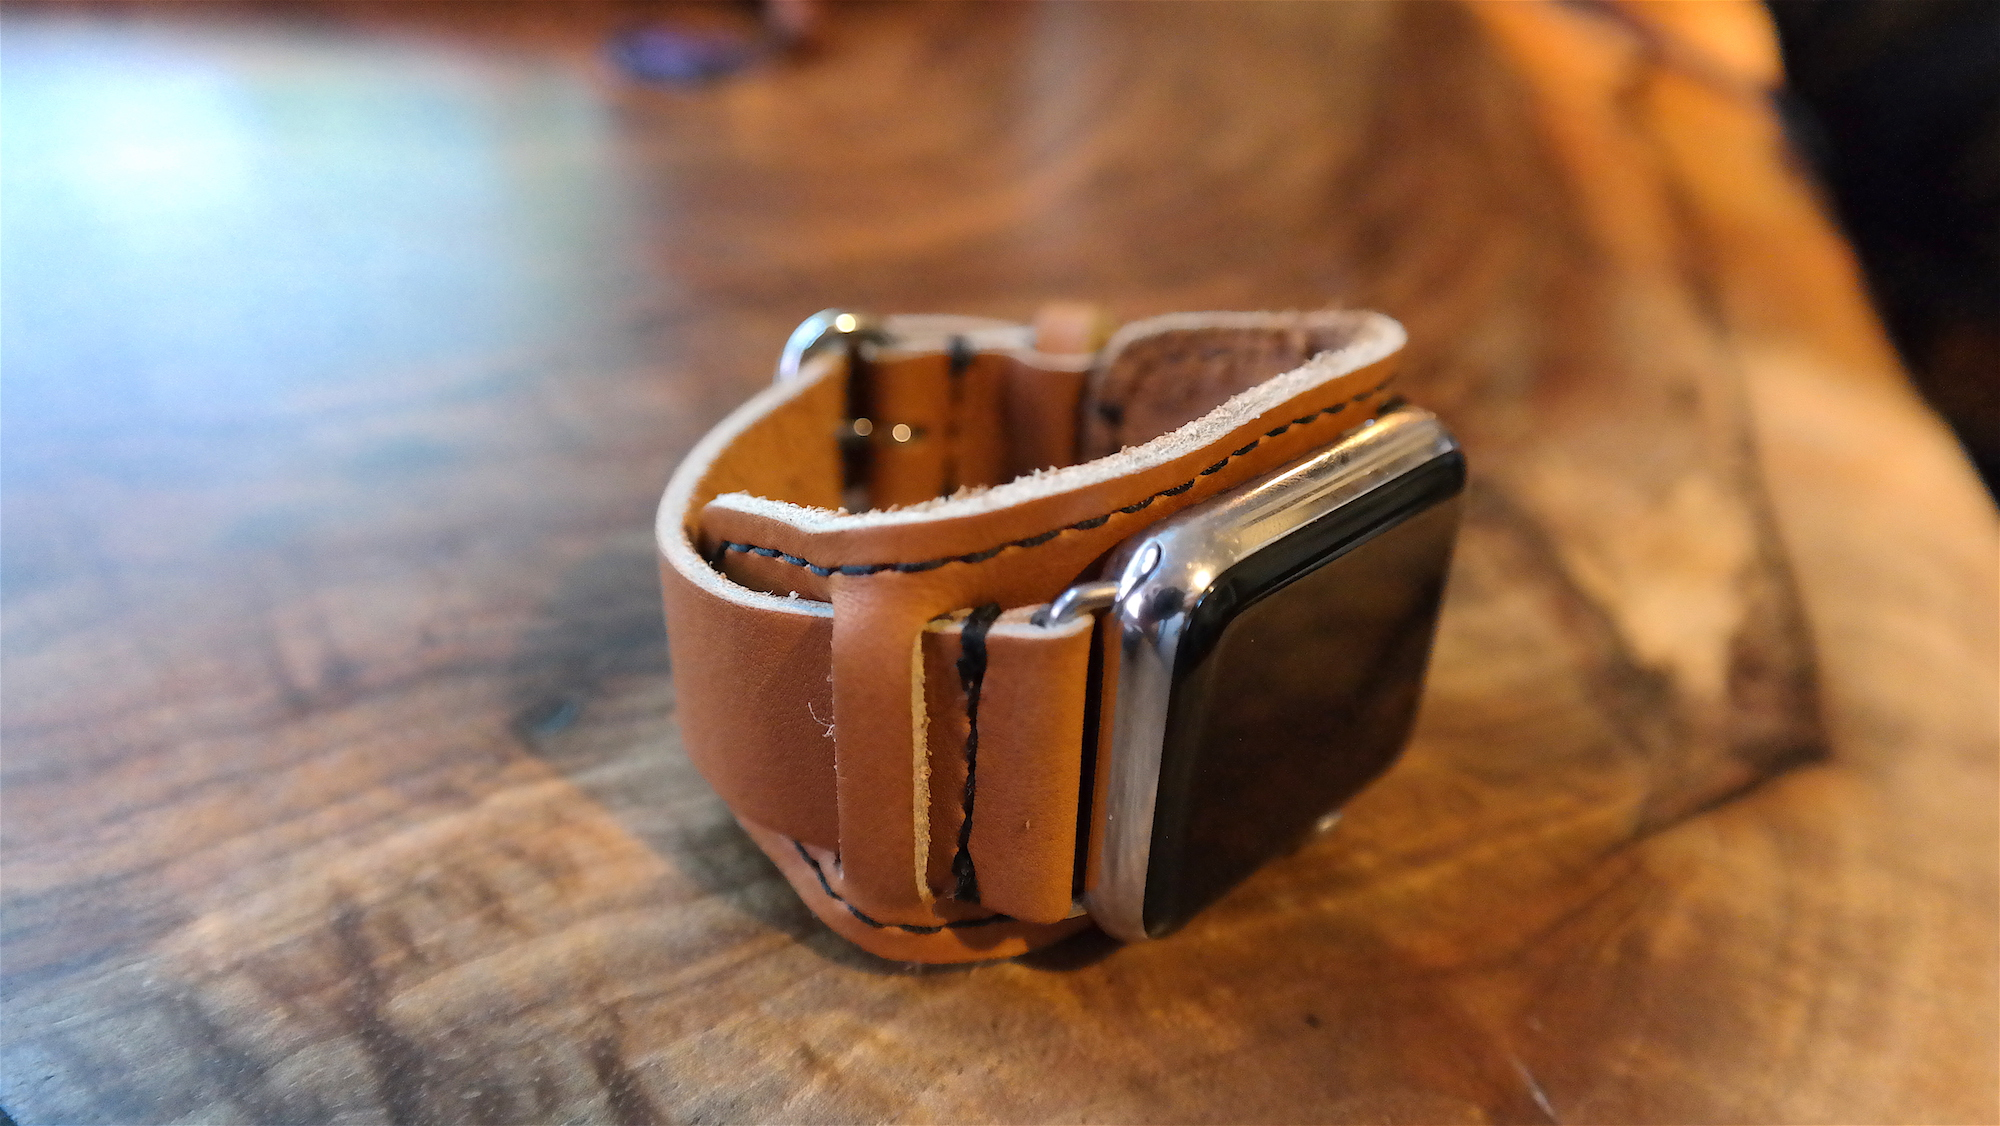 62e2fc82c04 Review  Pad   Quill s new Apple Watch band takes on the Hermès cuff ...